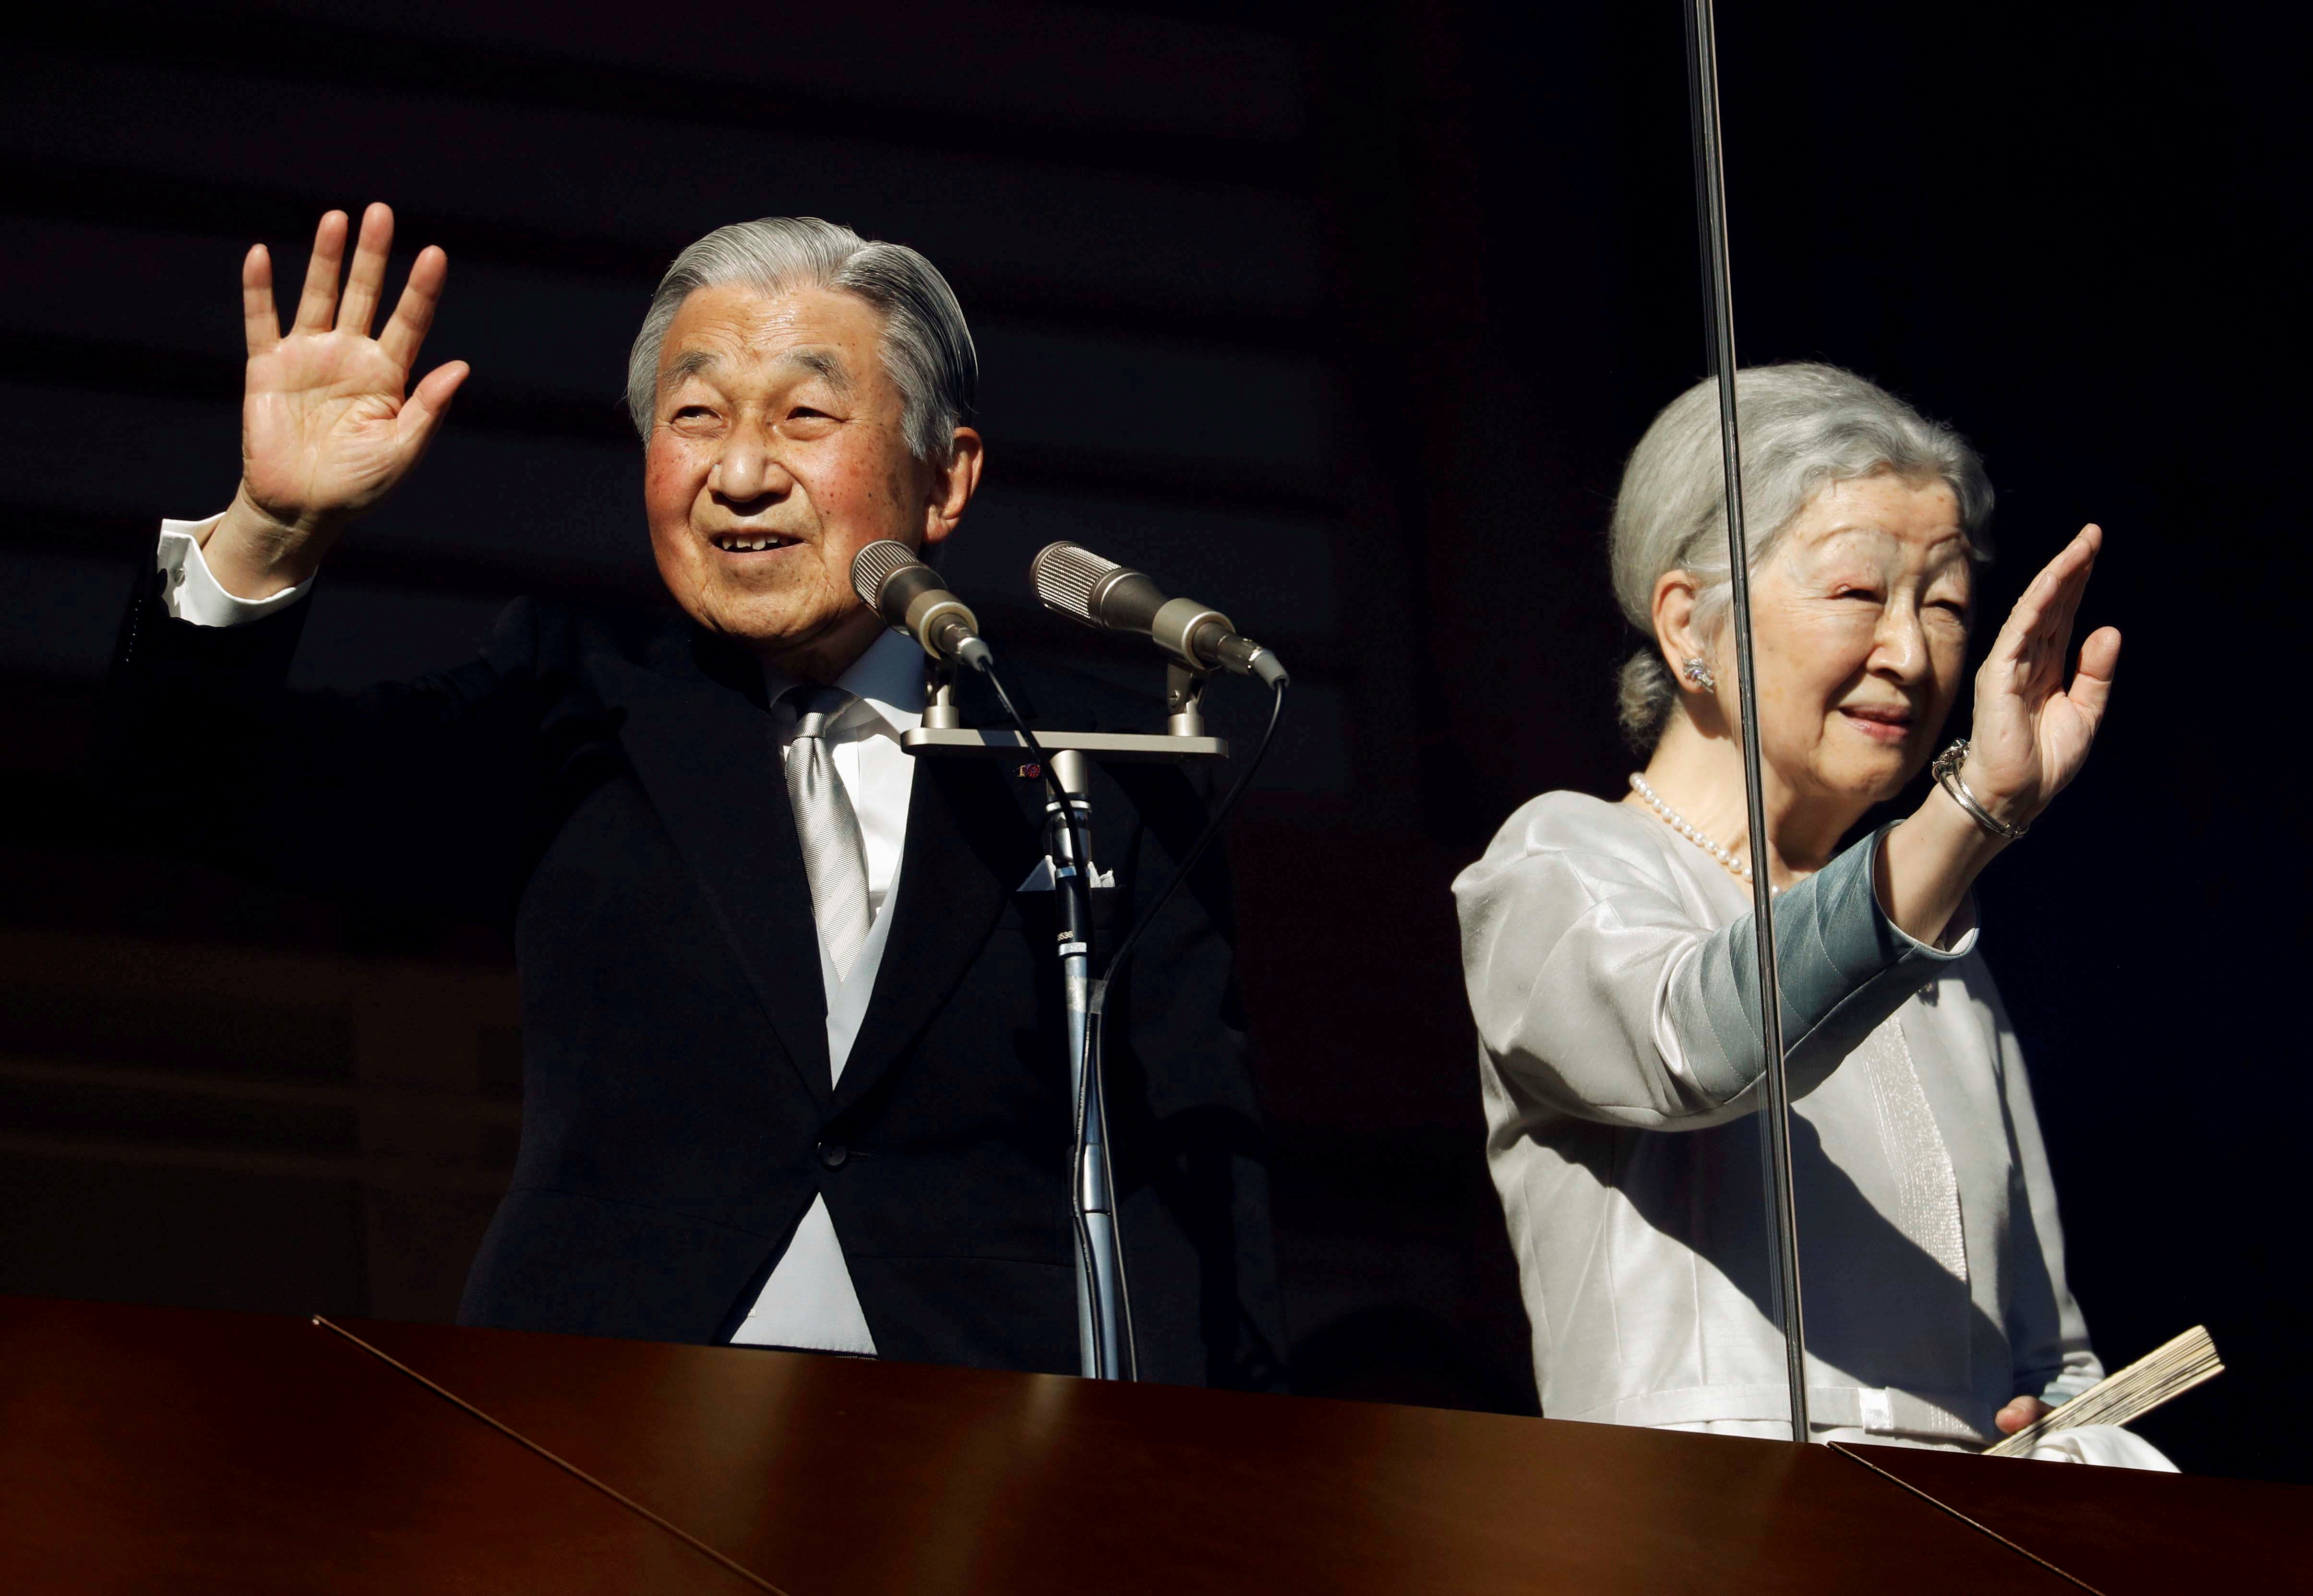 FILE PHOTO: Japan's Emperor Akihito and Empress Michiko wave to well-wishers during a public appearance for New Year celebrations at the Imperial Palace in Tokyo, Japan, January 2, 2019.   REUTERS/Issei Kato